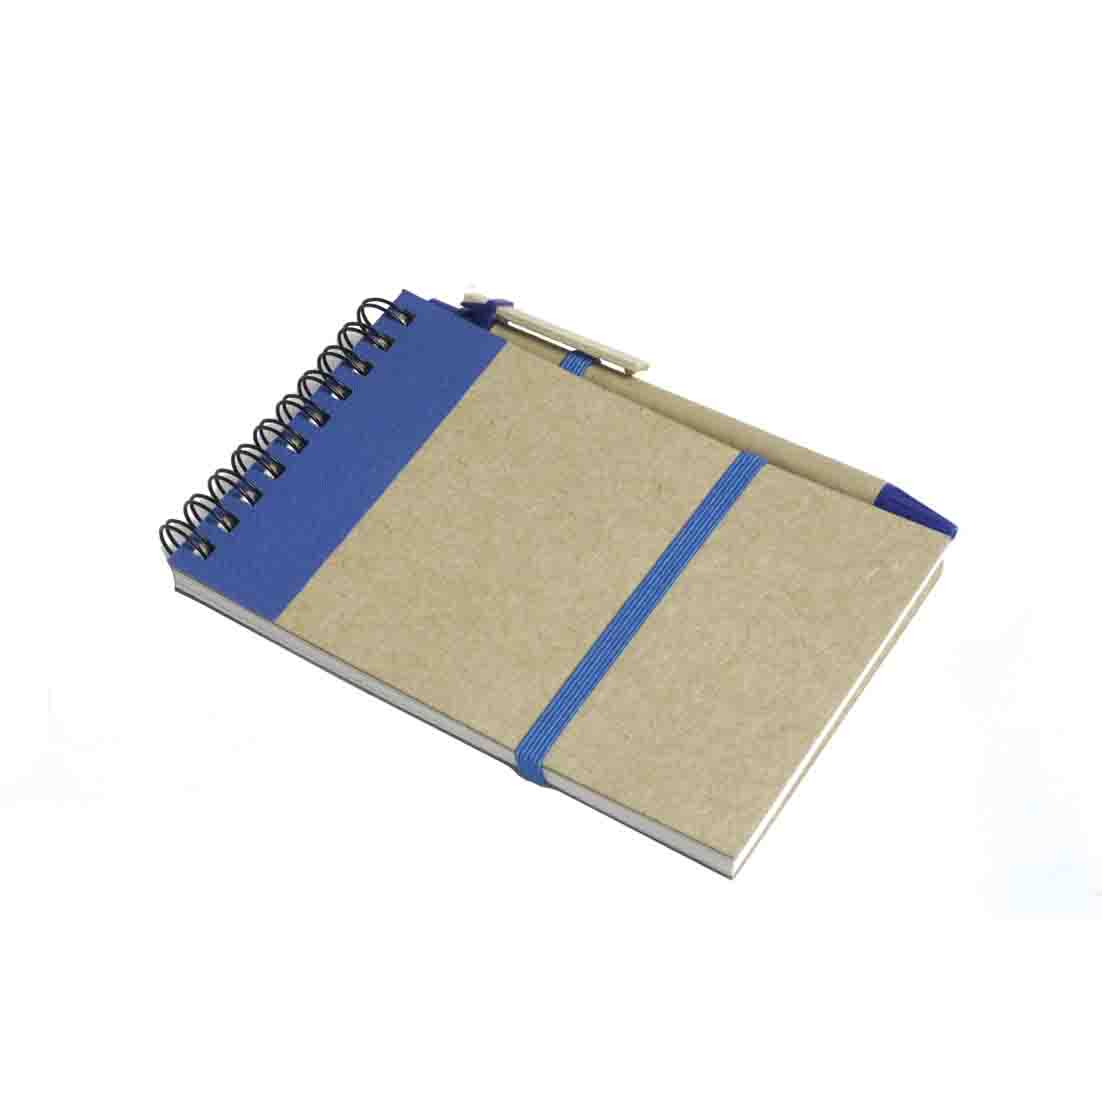 Recycled paper notebook with pen - royal blue gb-212 az